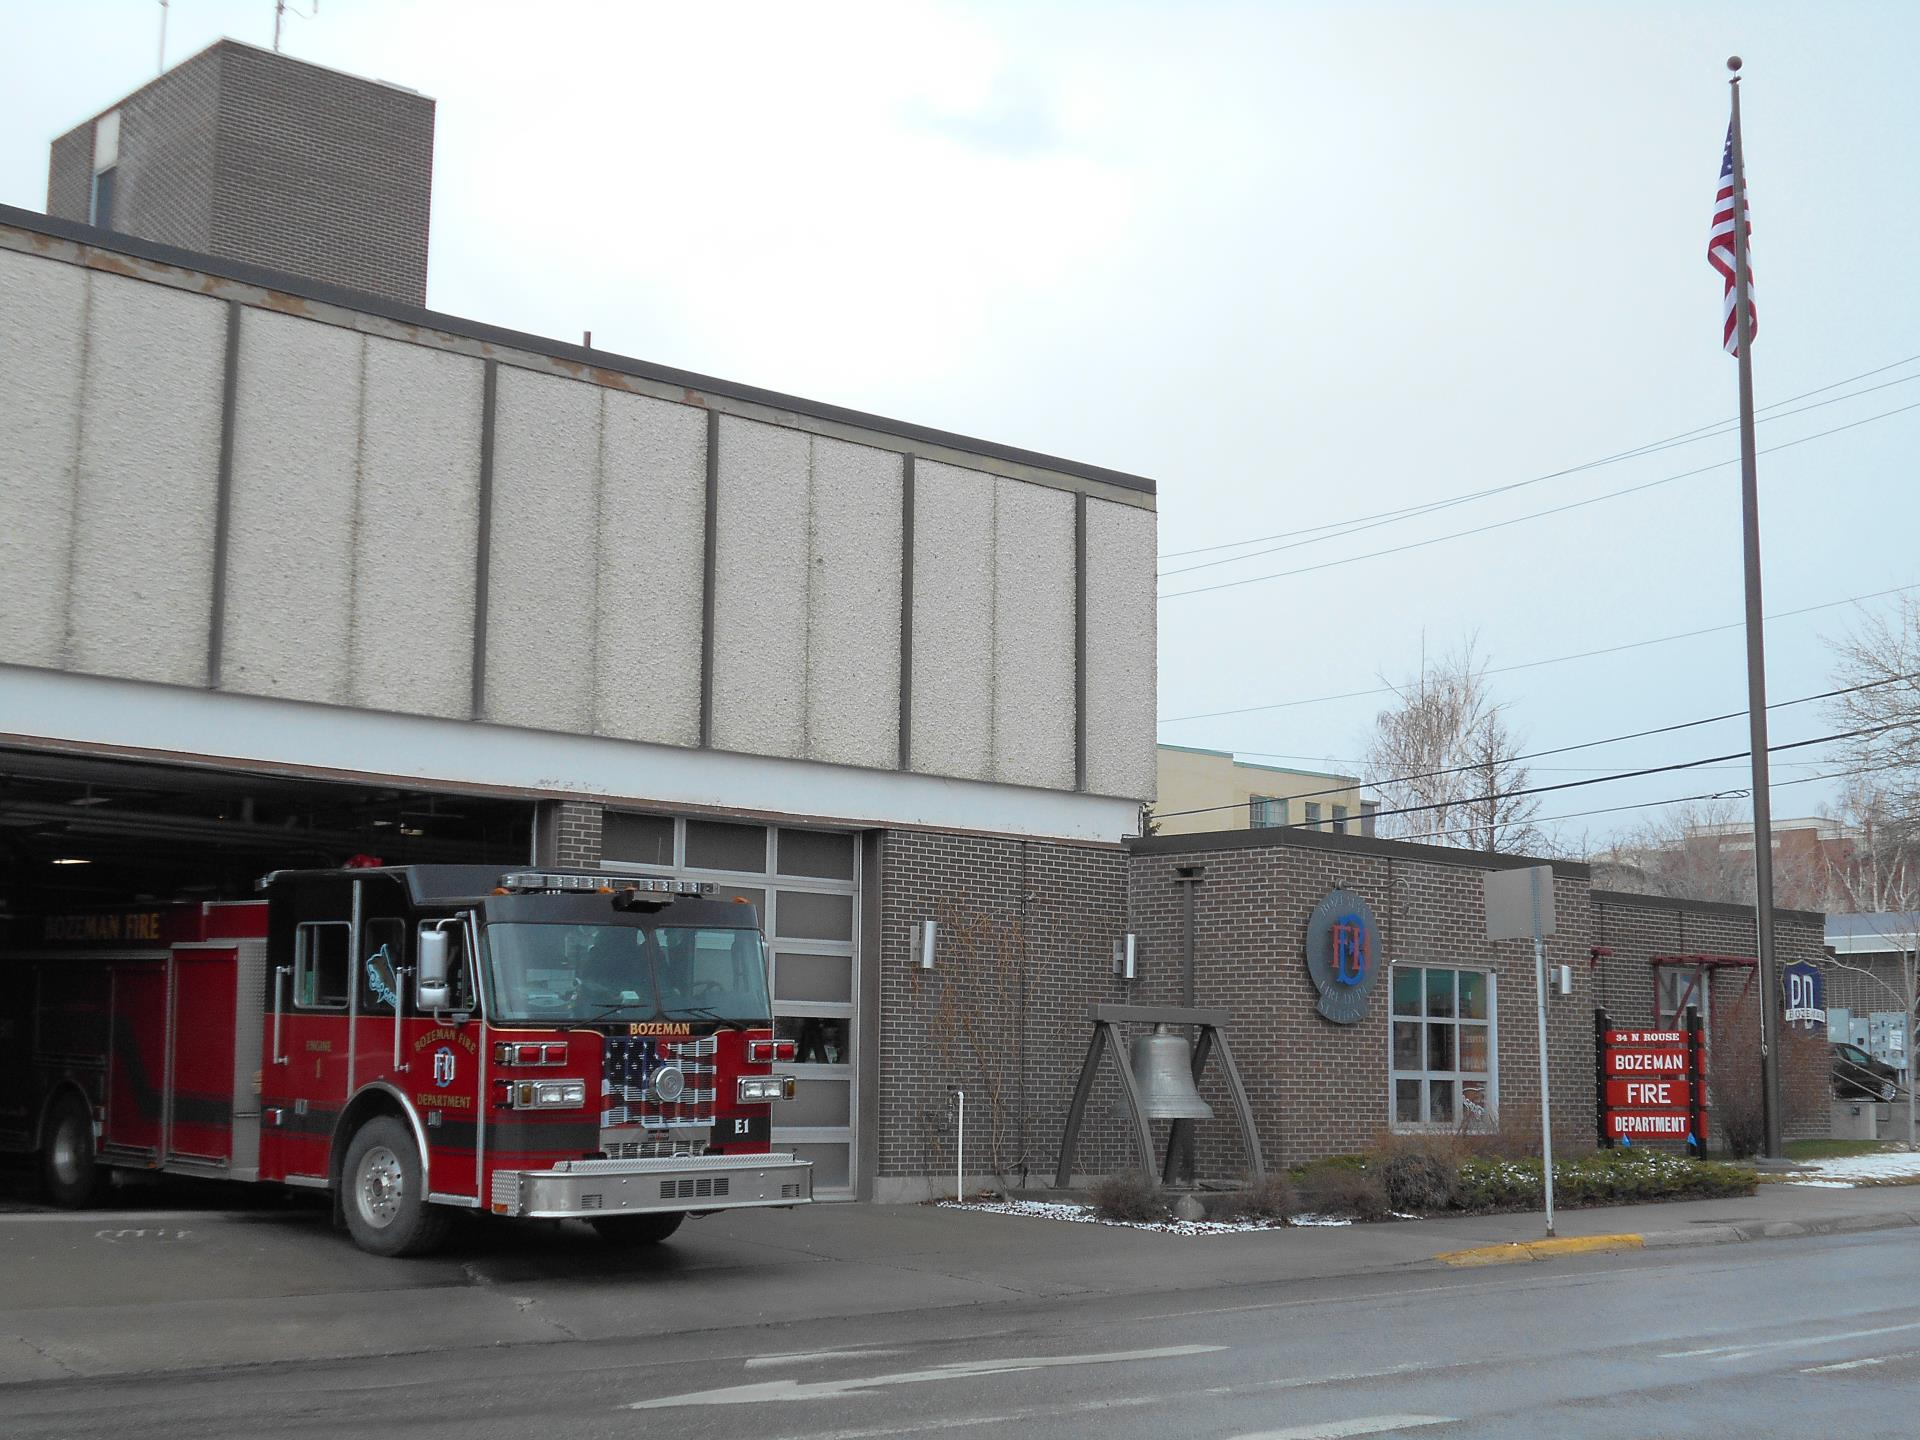 Fire Station 1 full image with engine